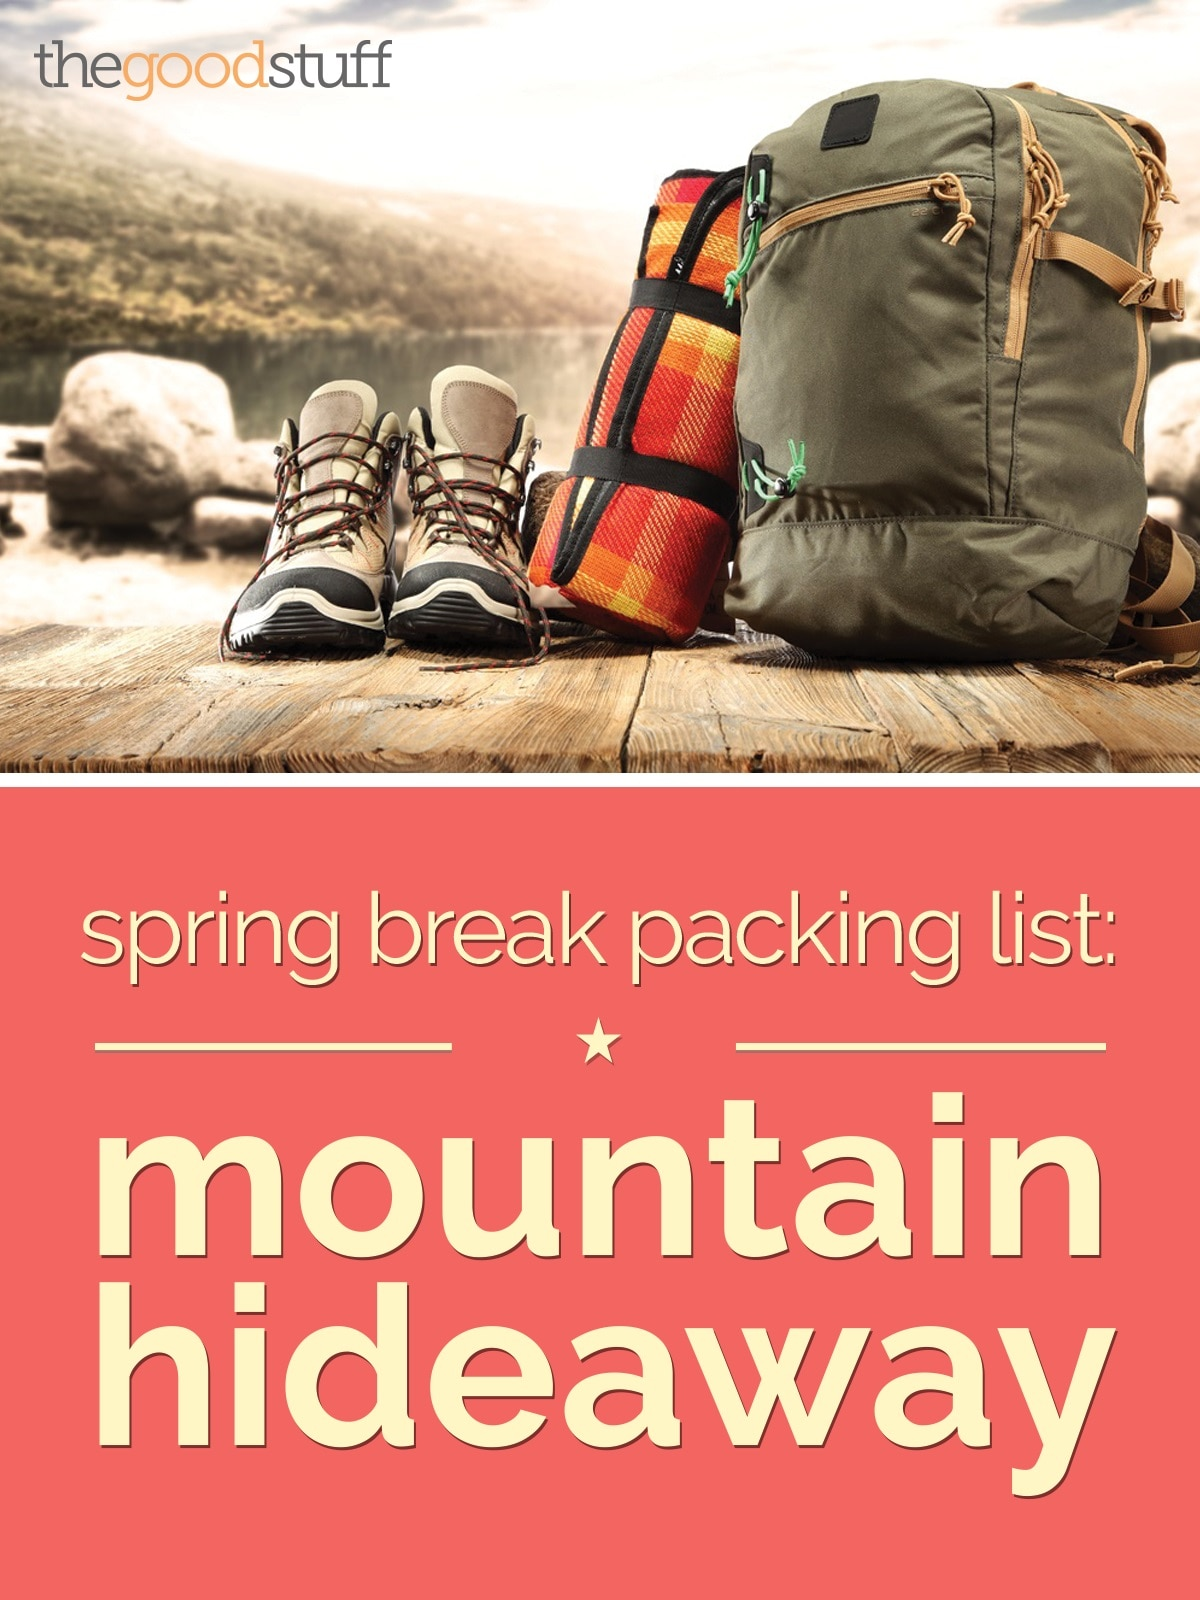 style-spring-break-packing-mountain-hideaway